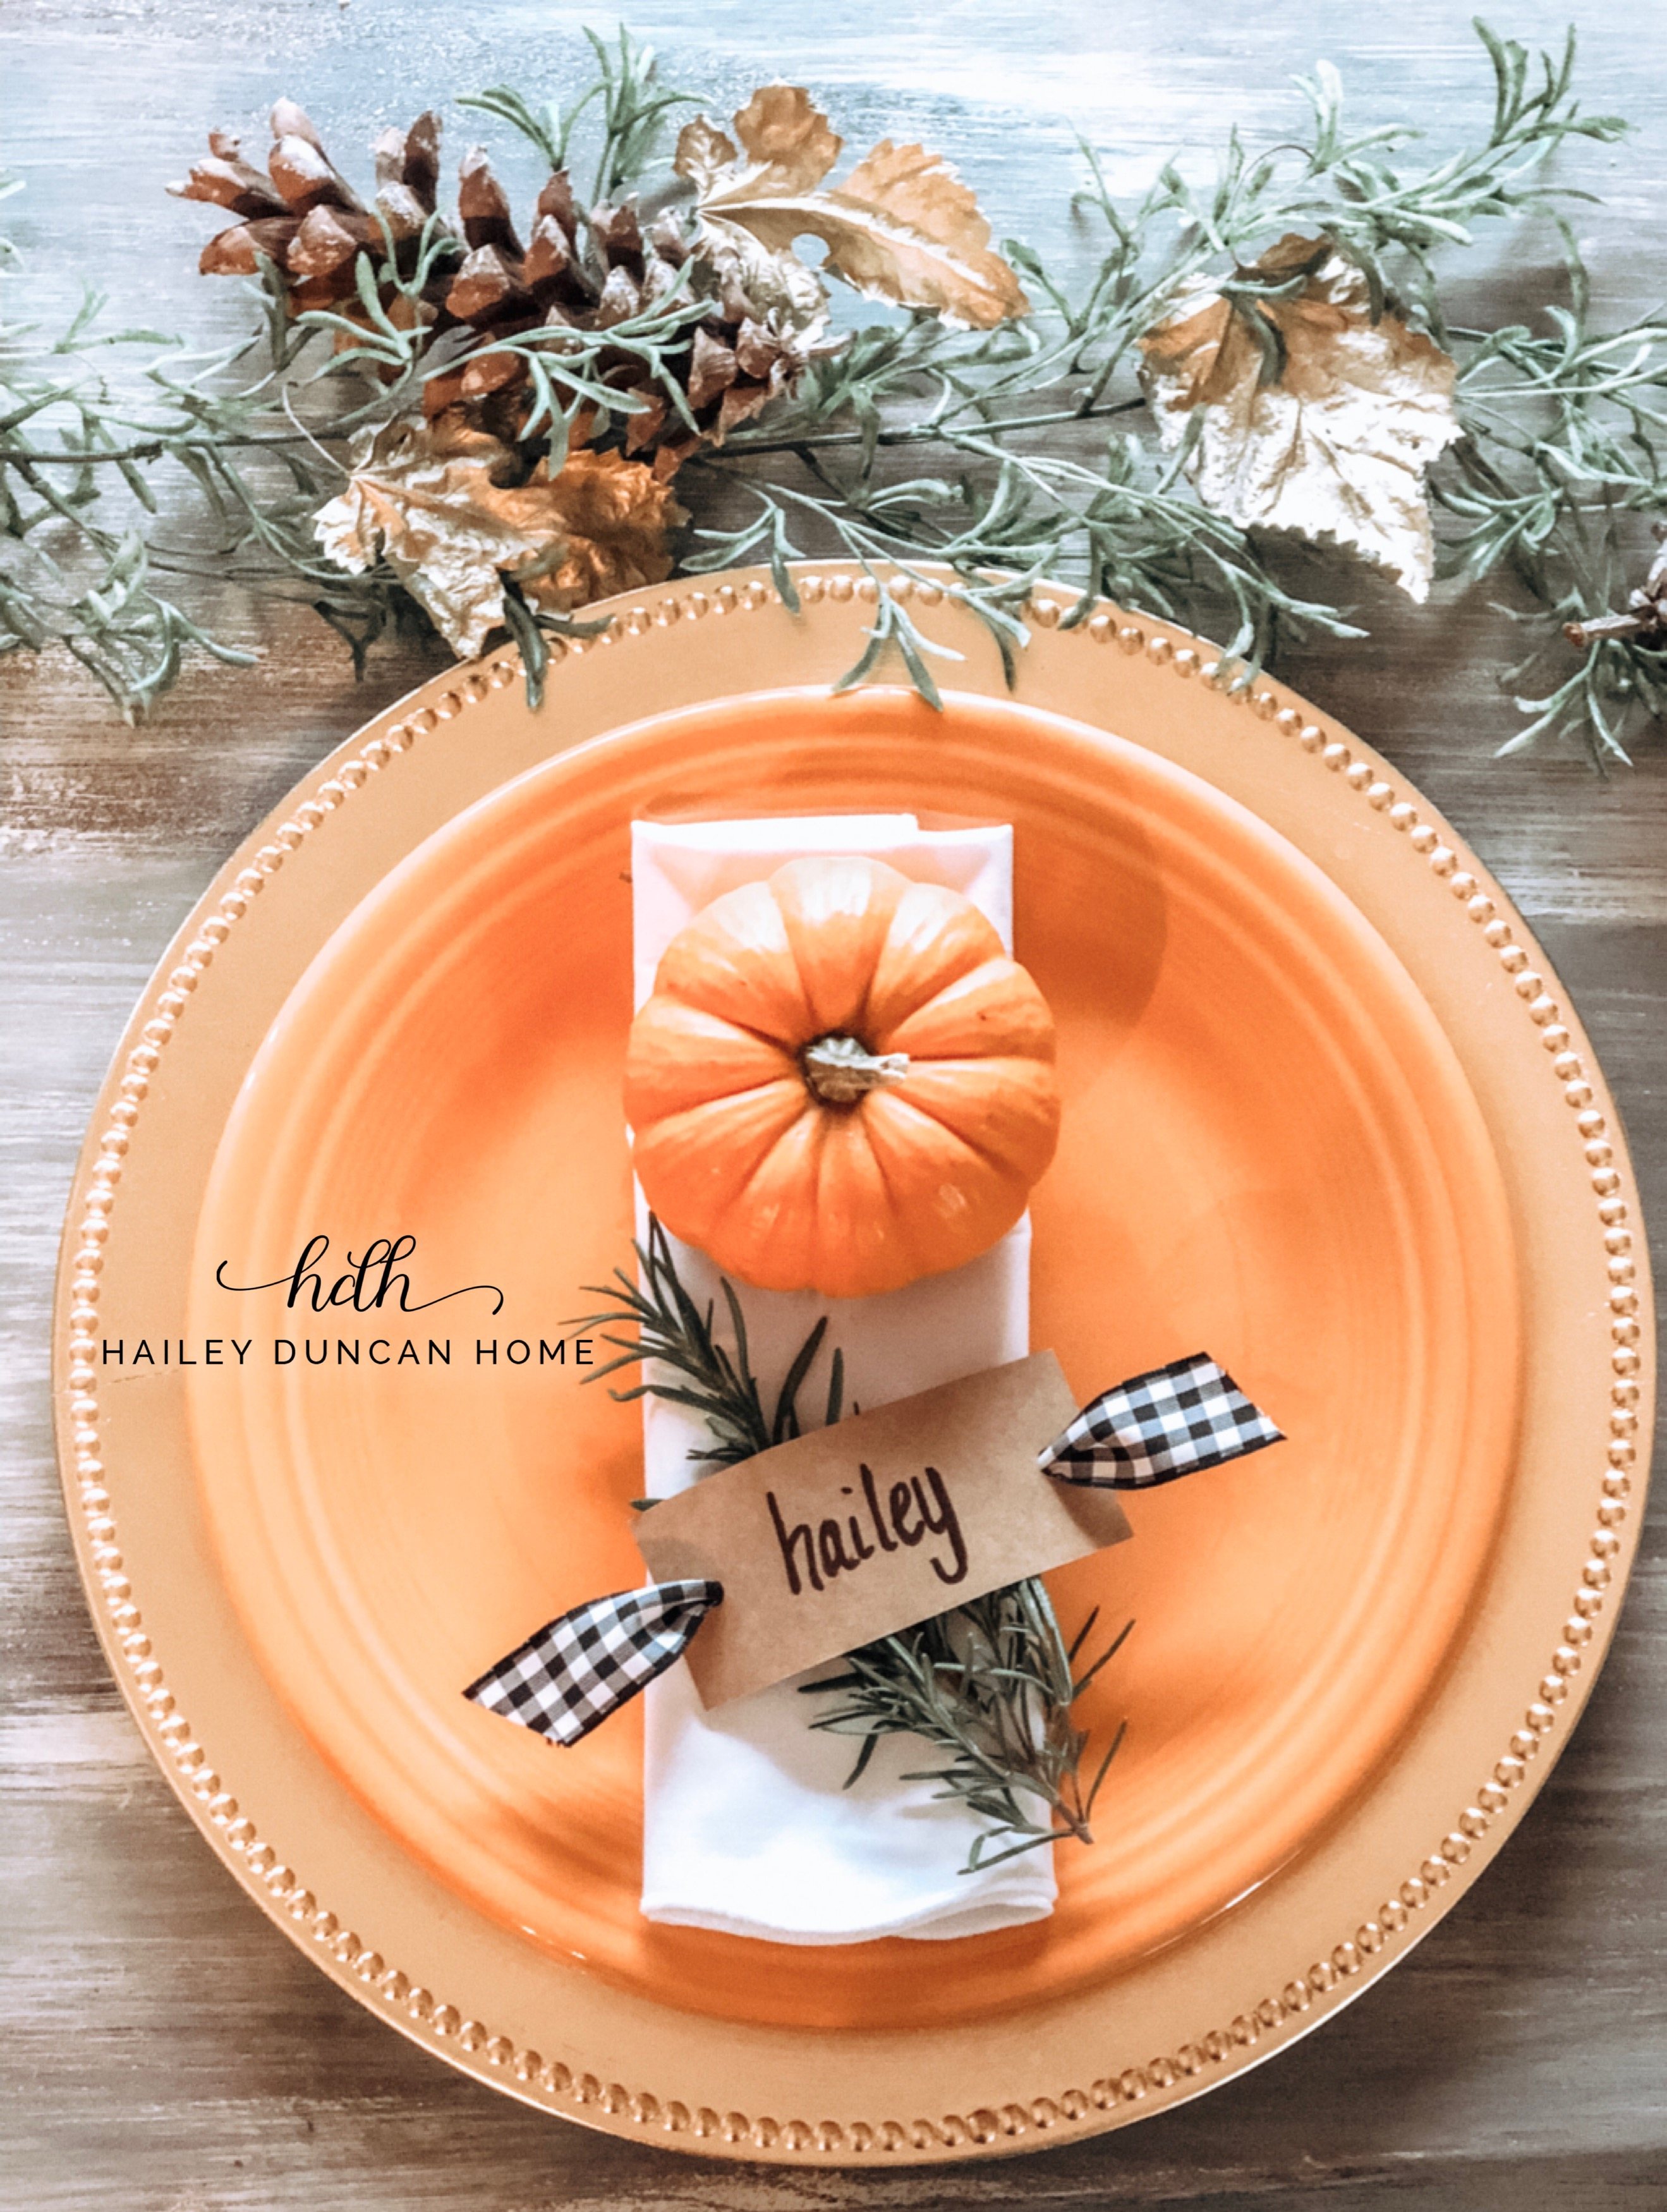 Thanksgiving Place Setting with pumpkin and name card on orange plate